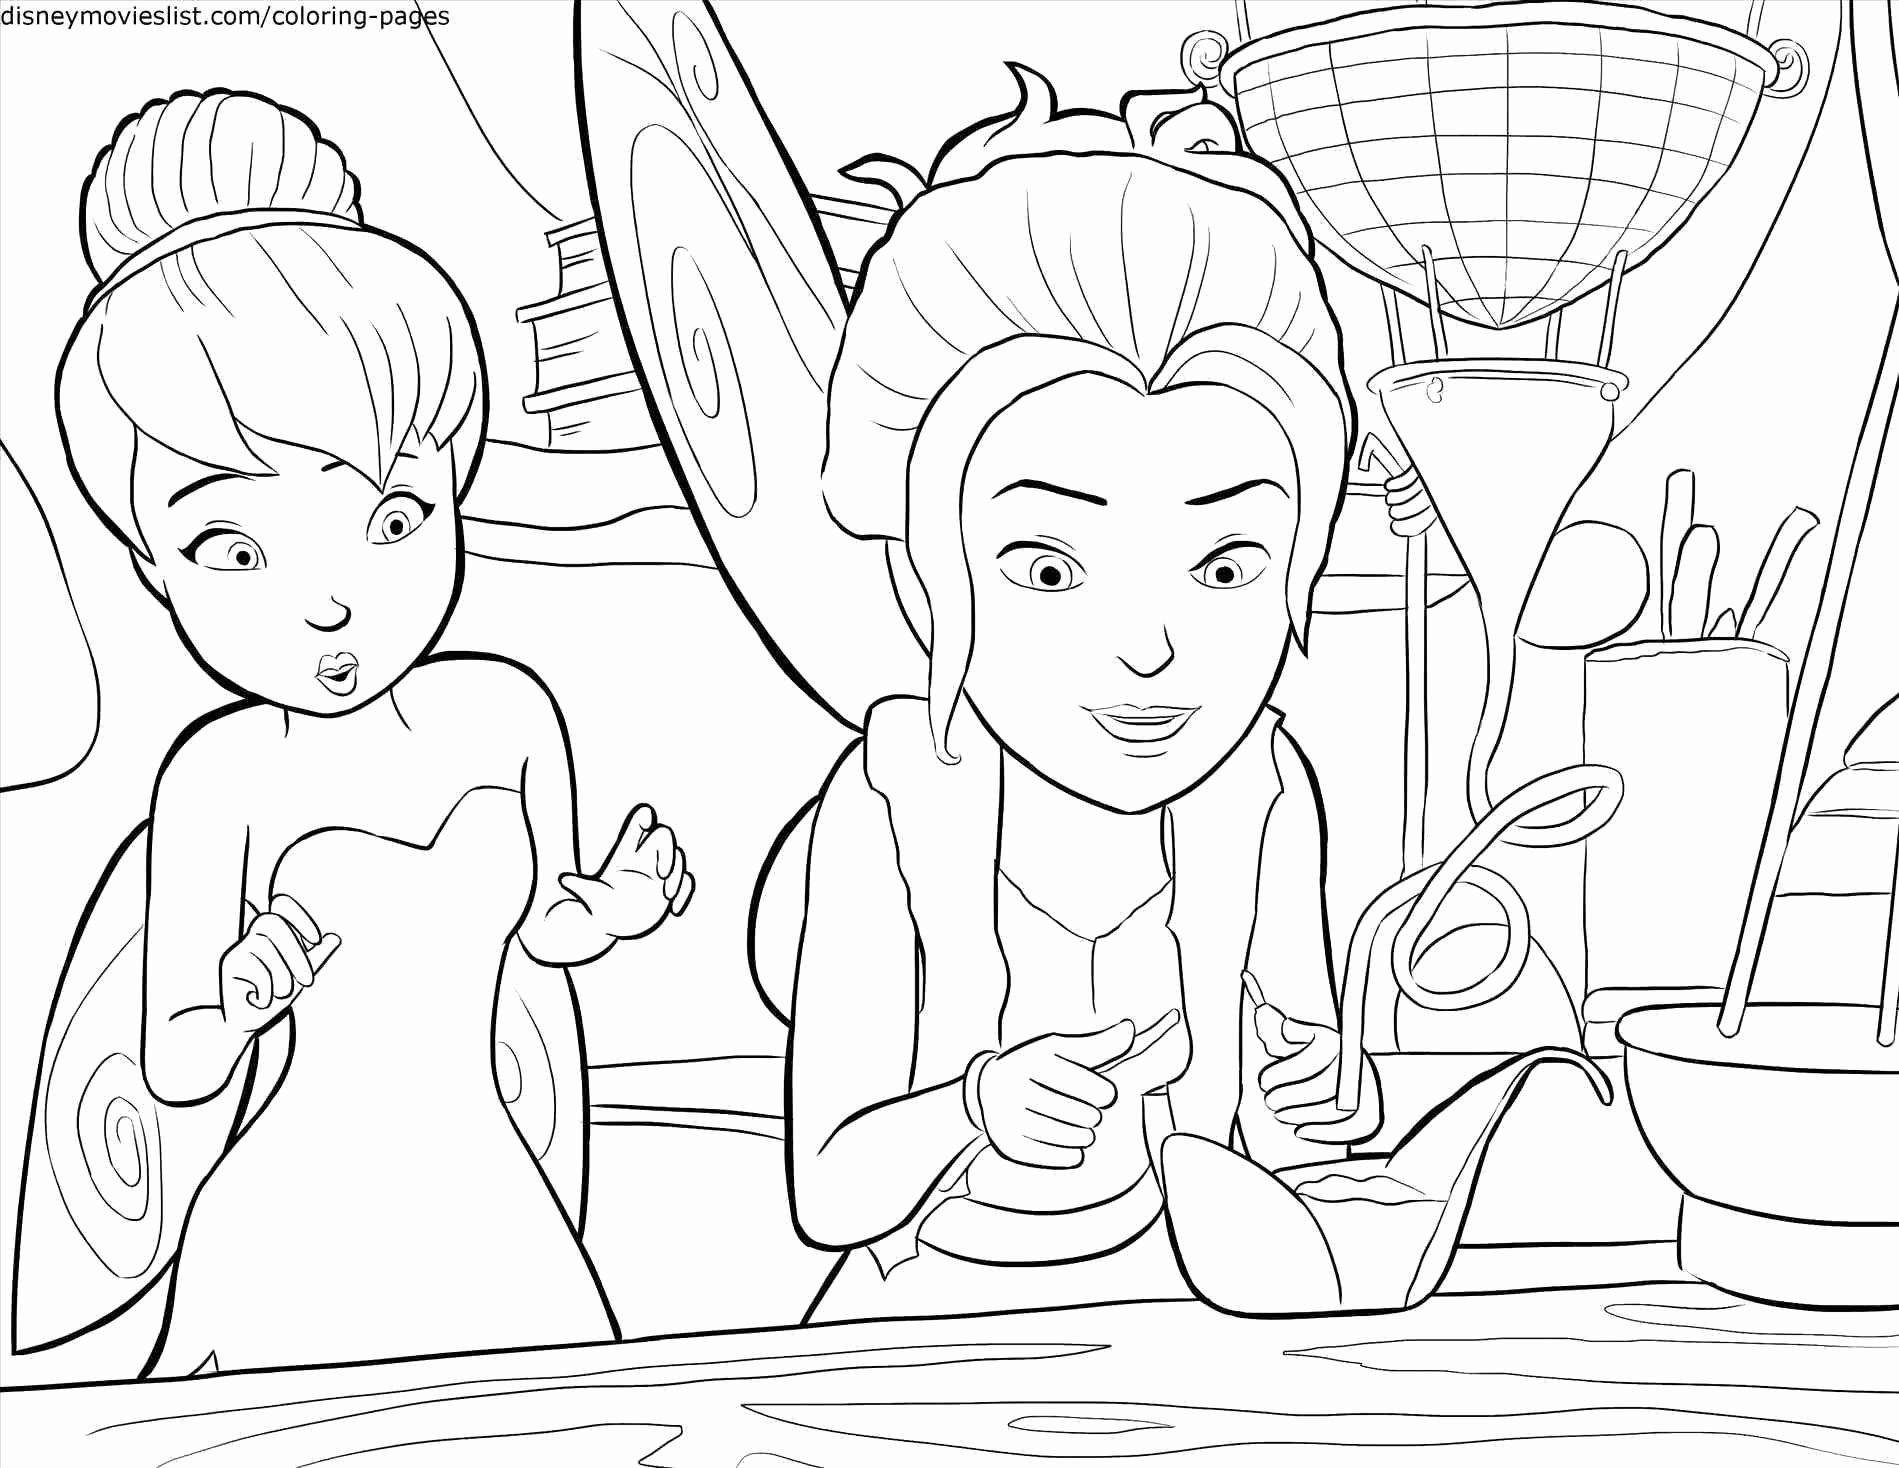 1899x1468 Disney Fairies Coloring Pages New Disney Fairies Coloring Pages